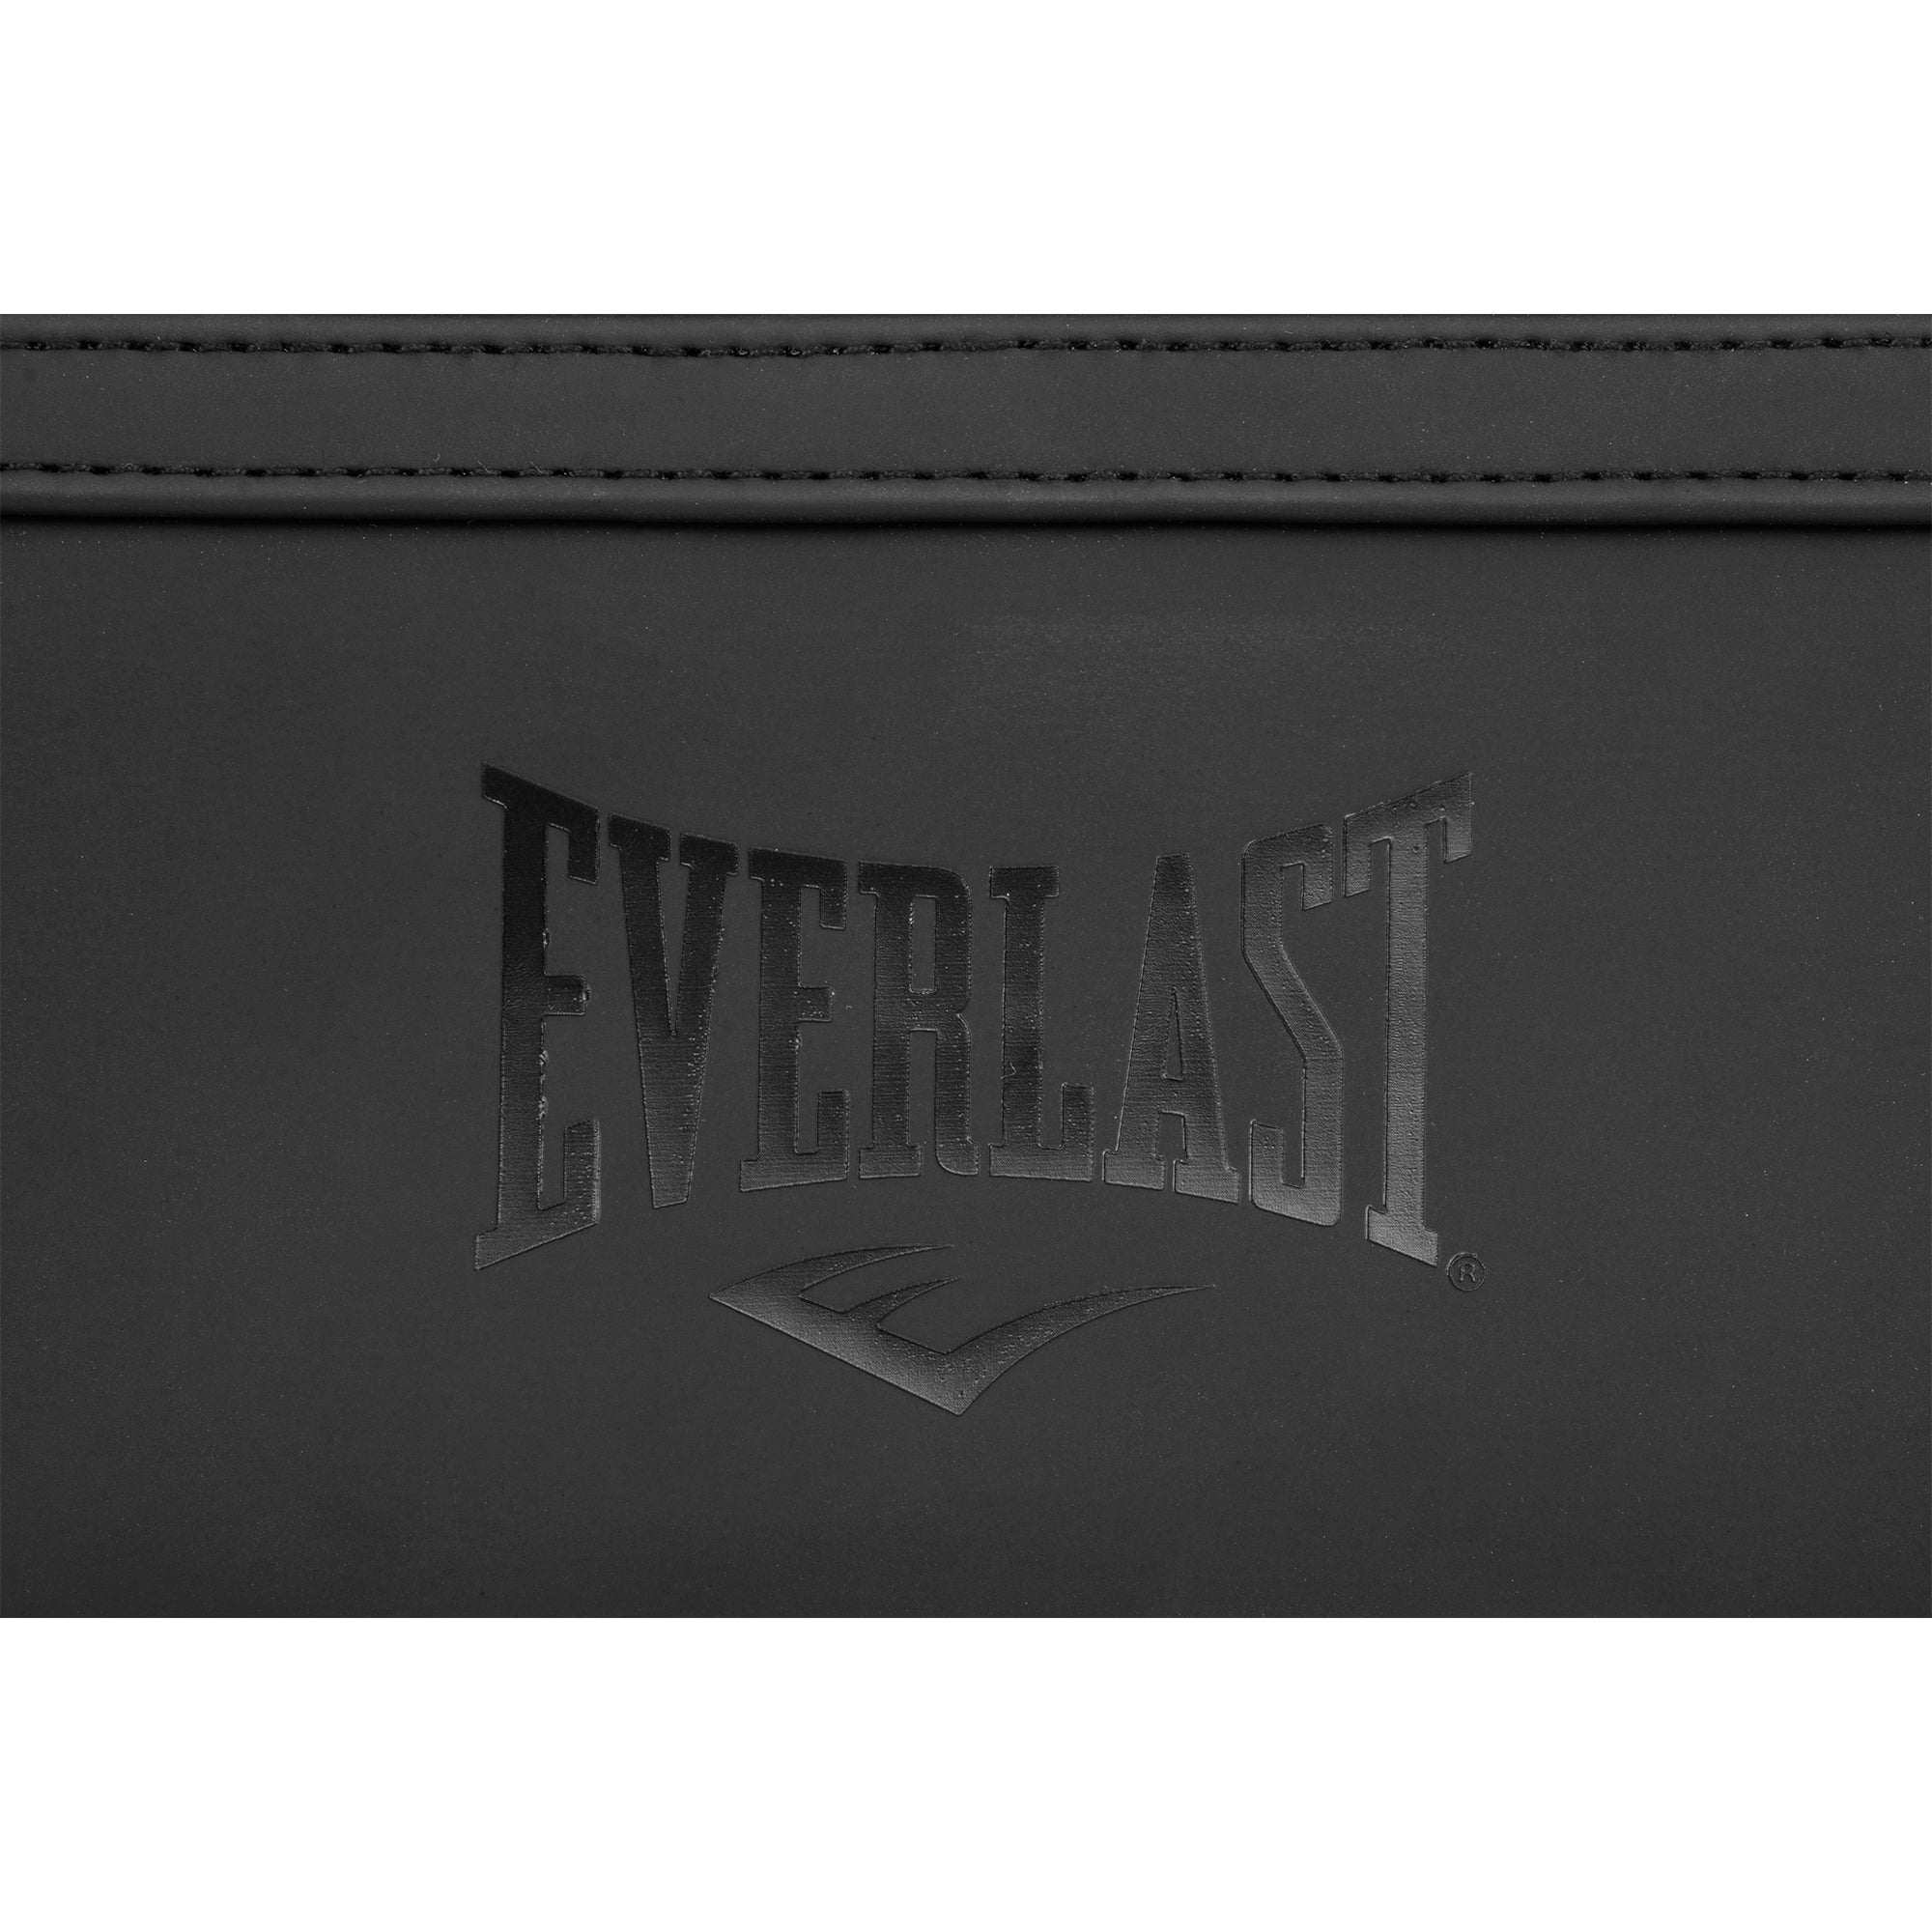 Everlast Round One Shave Kit by Everlast Canada